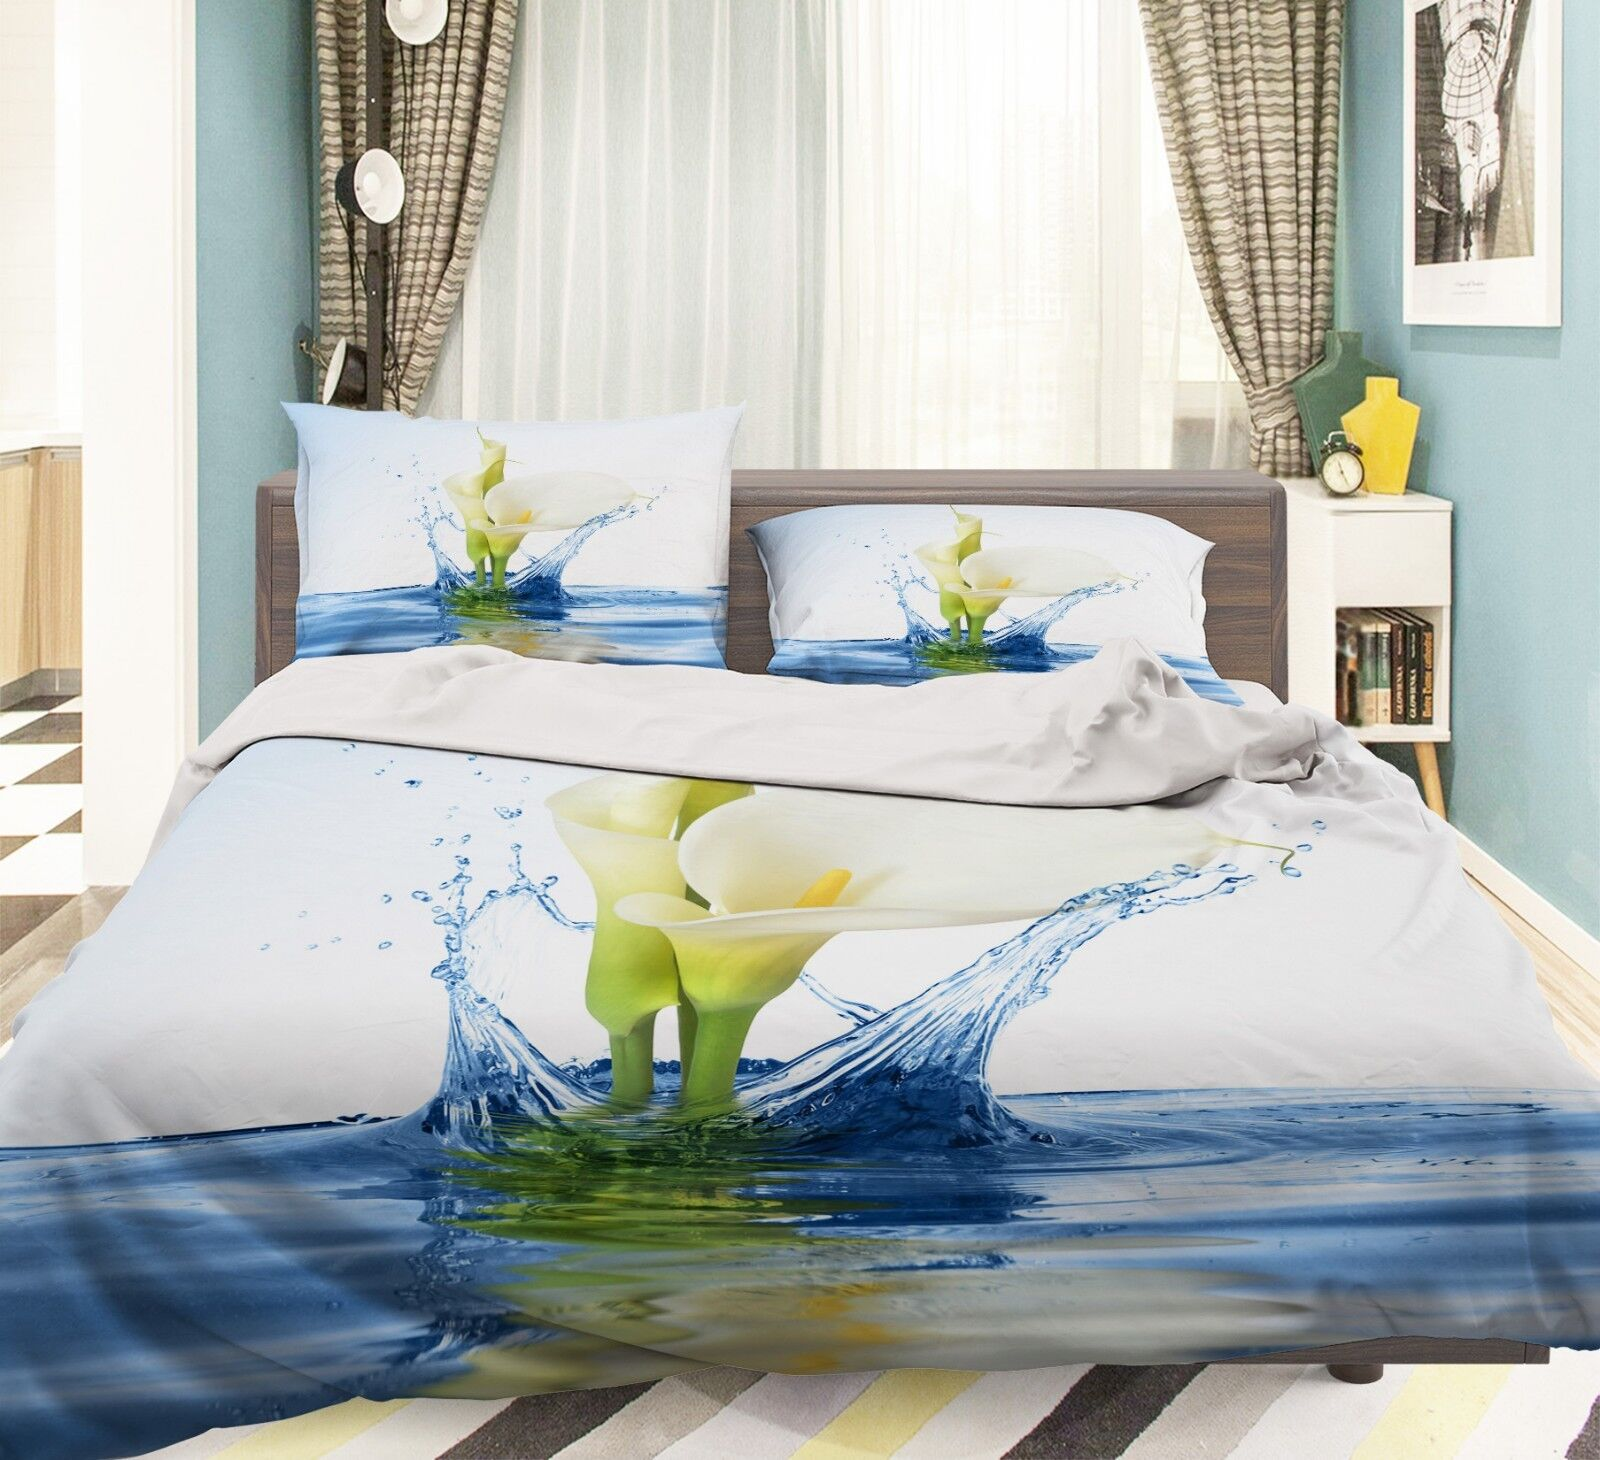 3D Lily Lake 576 Bed Pillowcases Quilt Duvet Cover Set Single King UK Summer